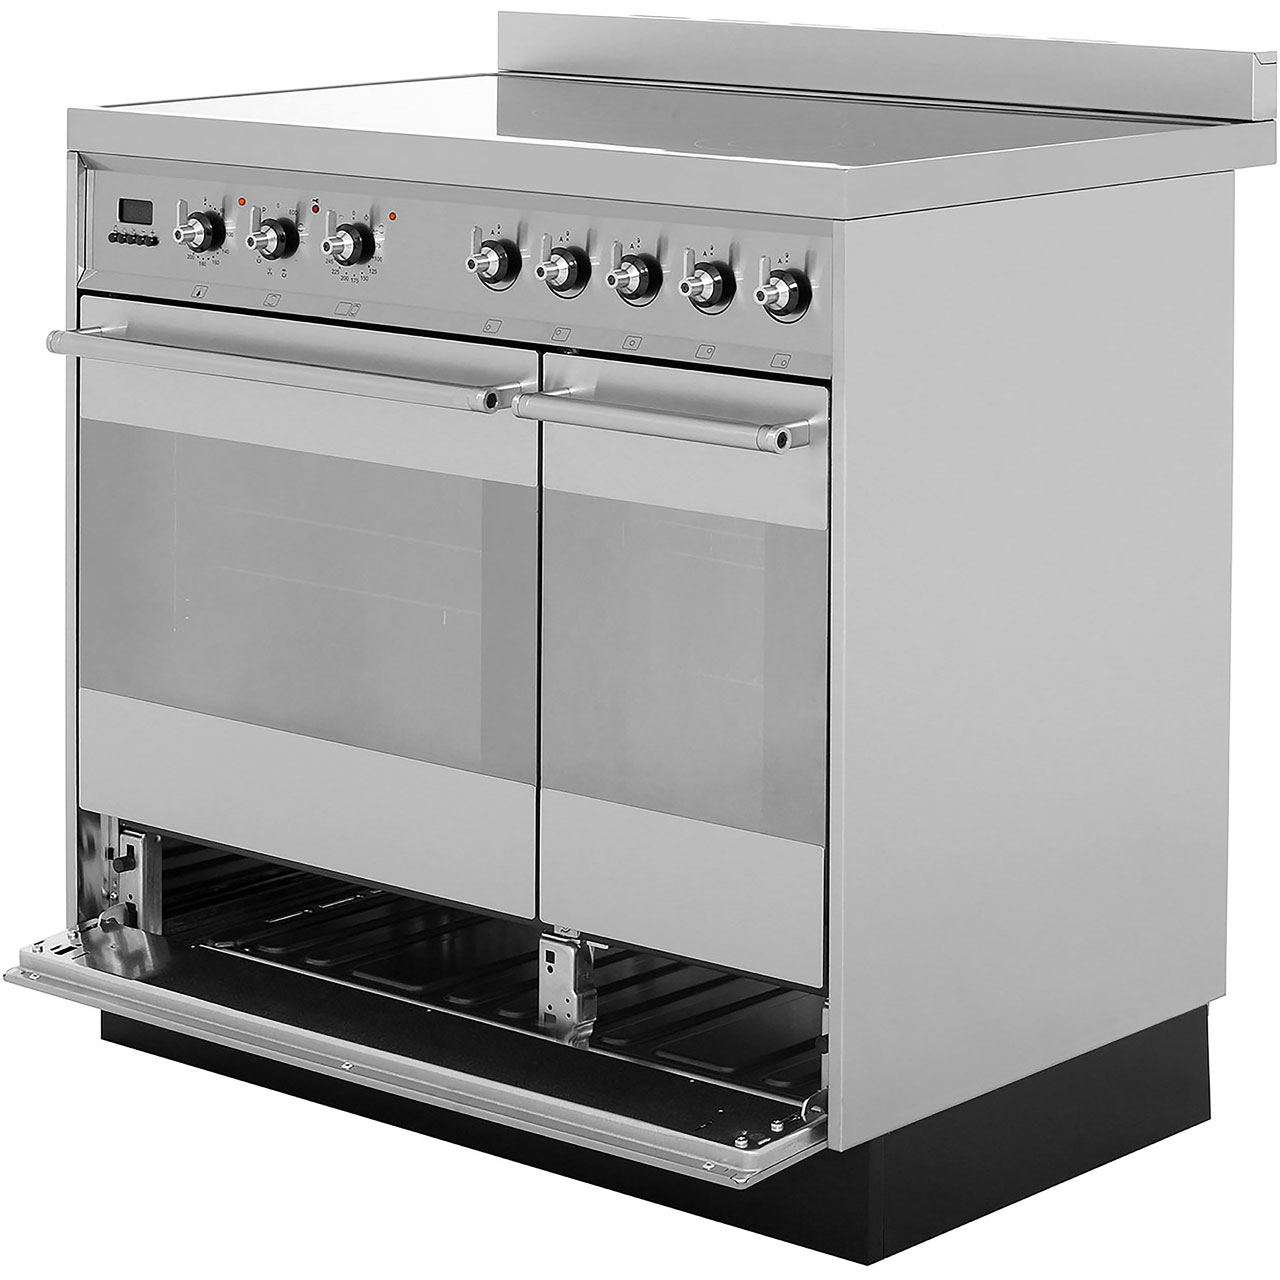 Smeg Symphony Sy92ipx8 Electric Range Cooker Stainless Steel Freestanding Oven Stove Winning Our Images 11